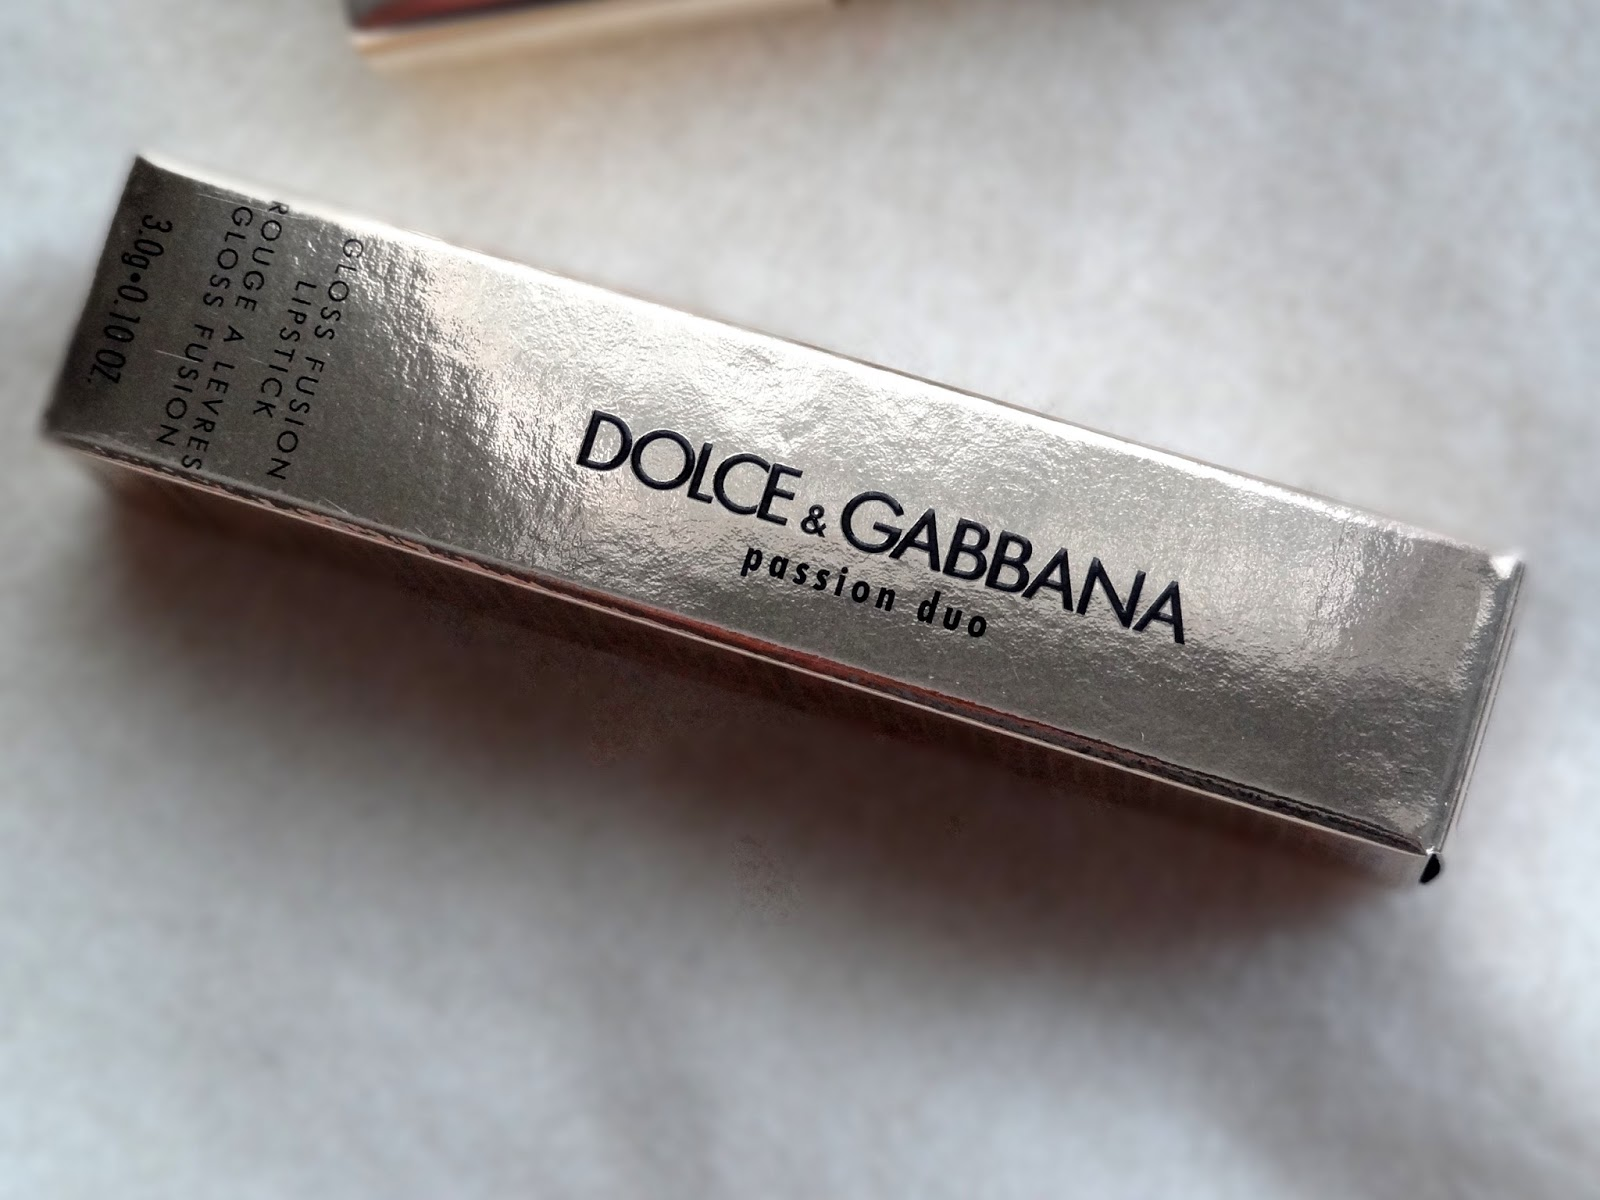 dolce & gabbana passion fusion gloss duo lipstick in 230 iridescent